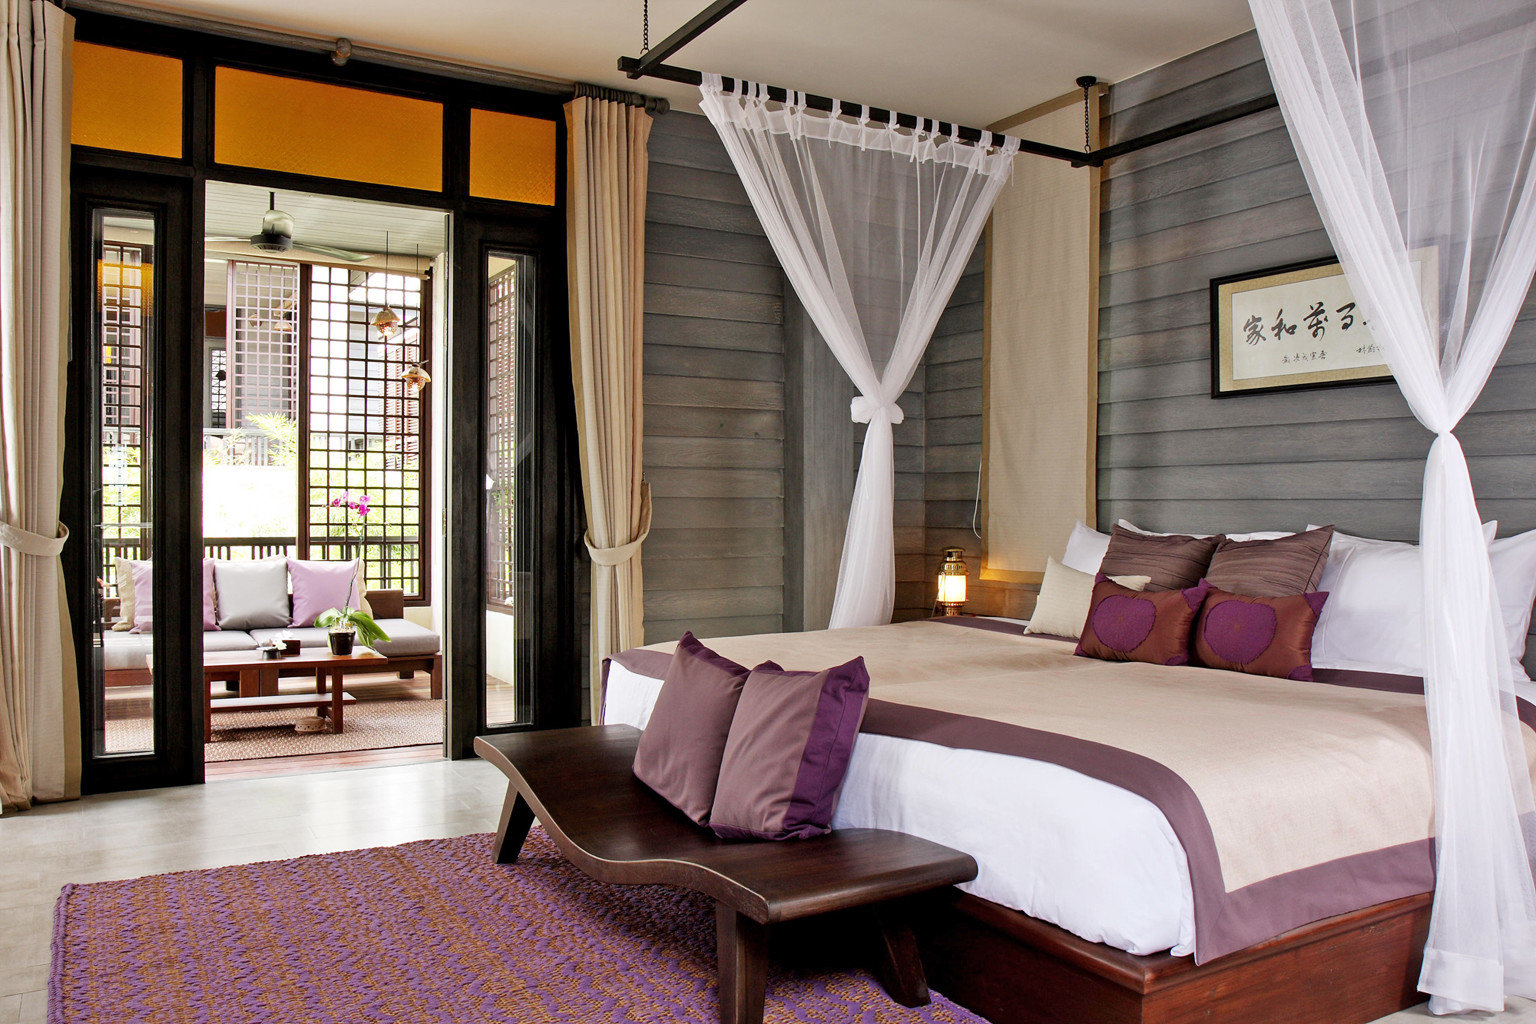 Bedroom Hotels Luxury Suite property home living room cottage Resort